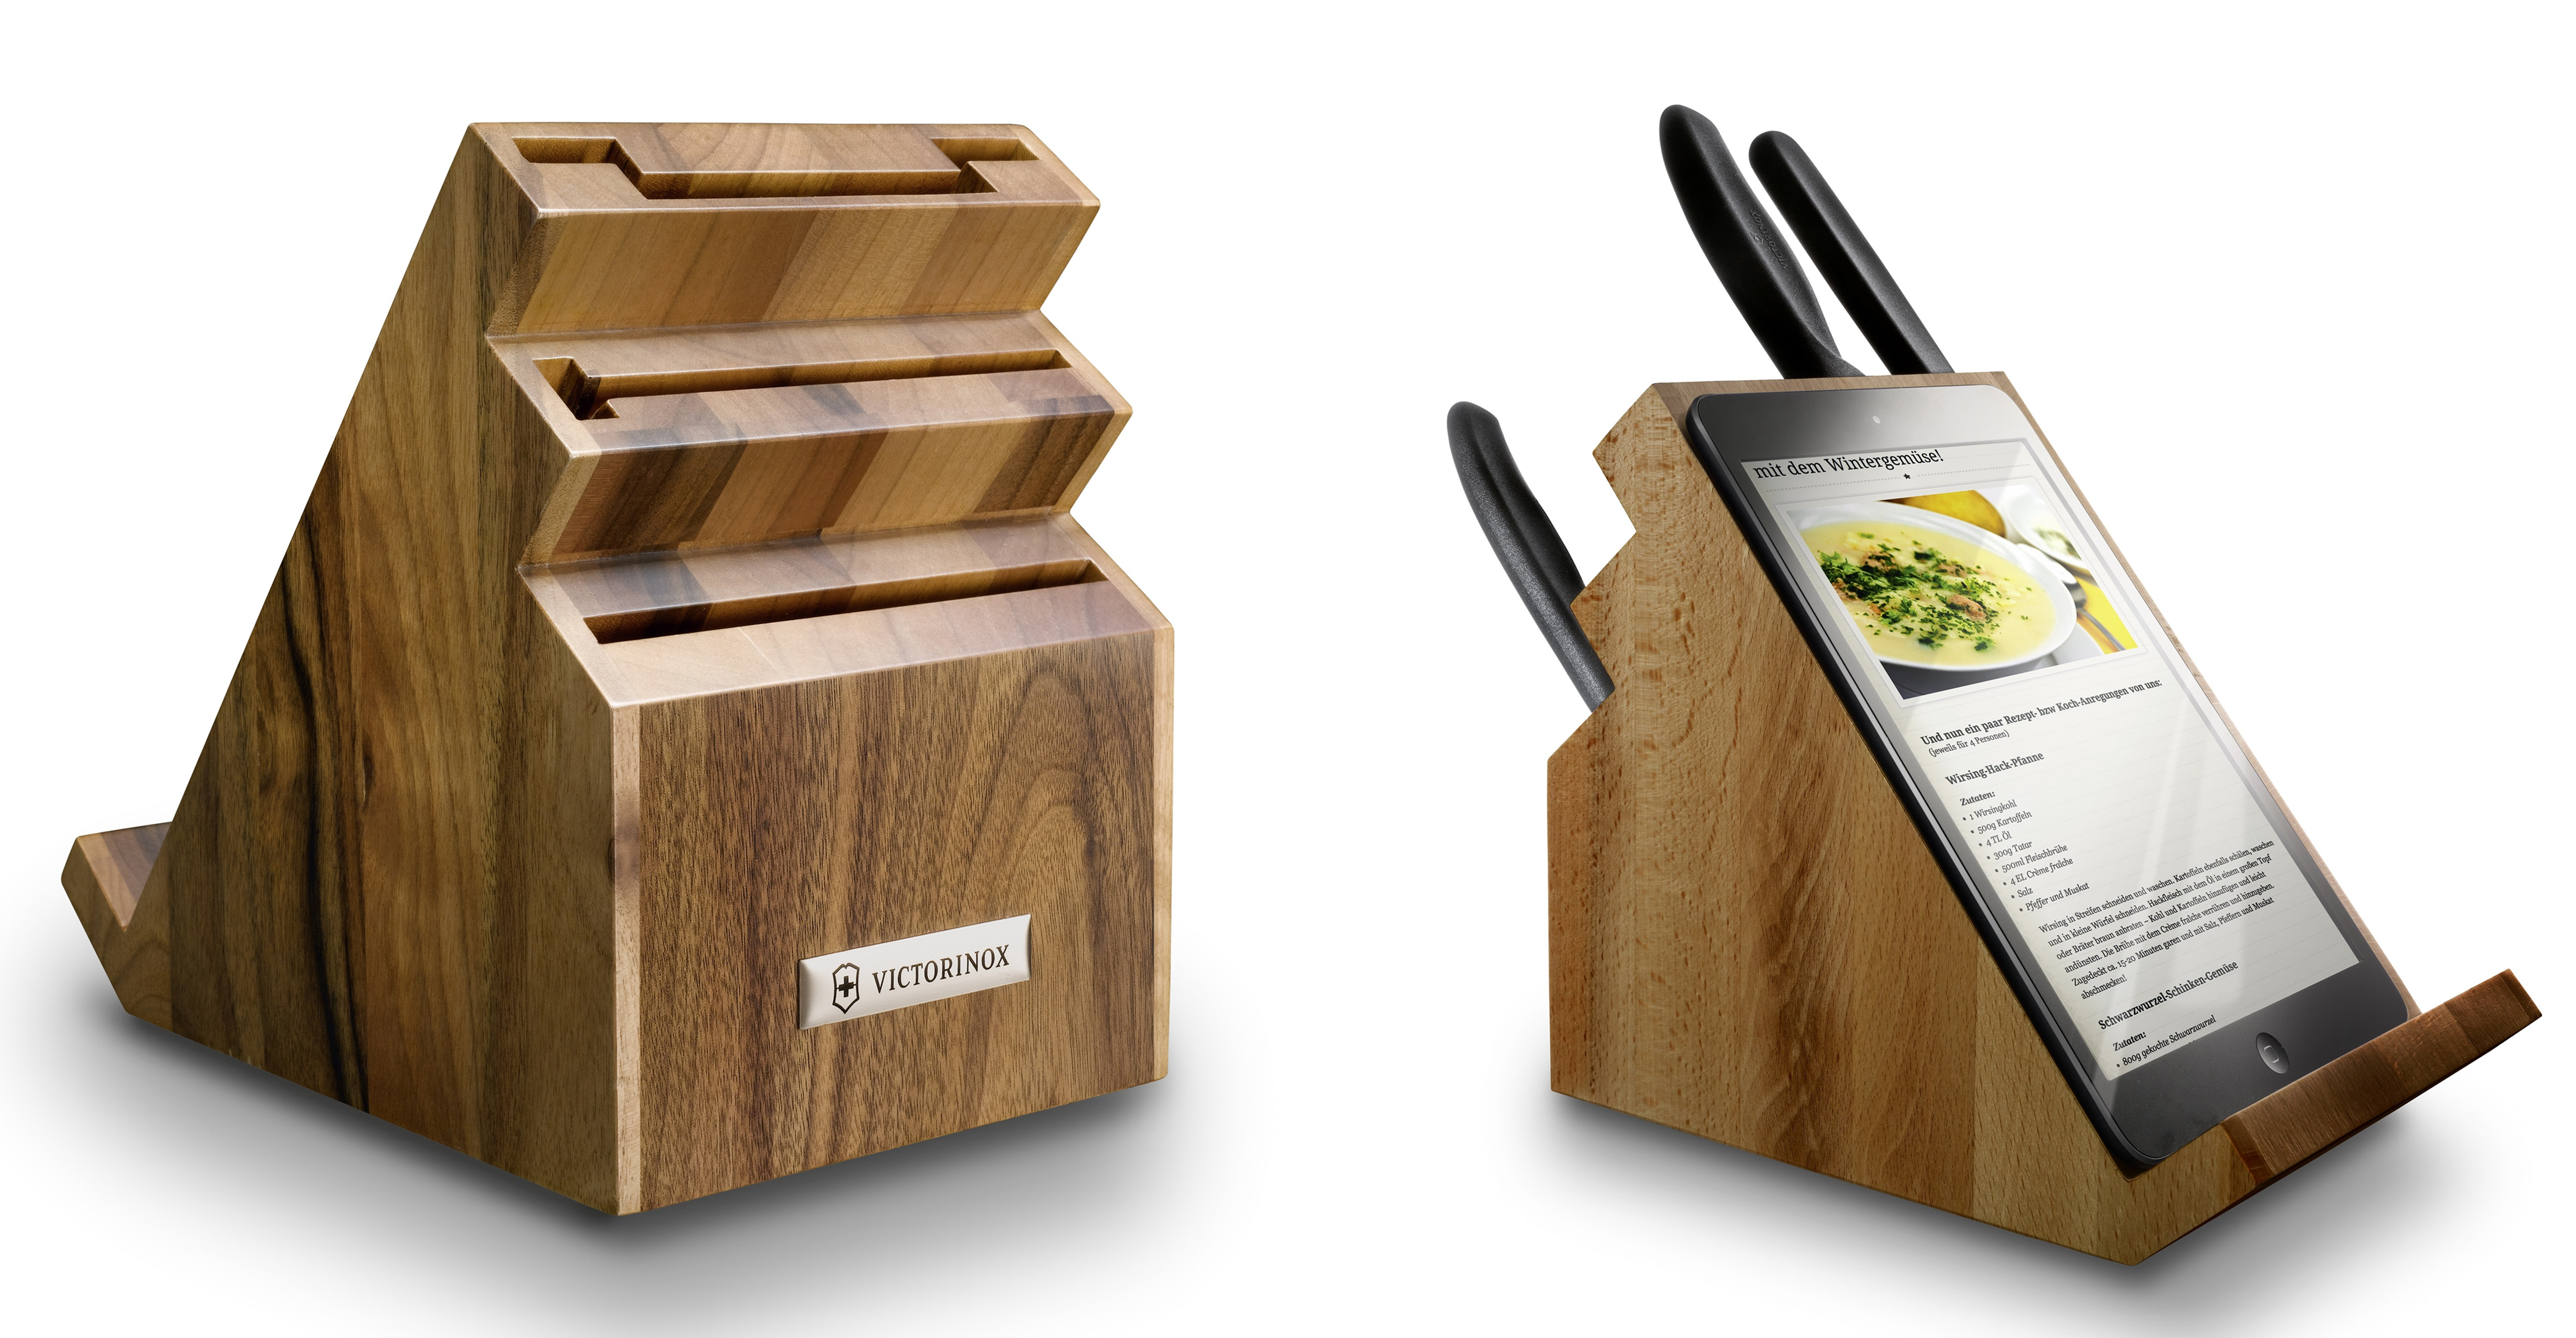 victorinox empty kitchen knives block with tablet support wood share